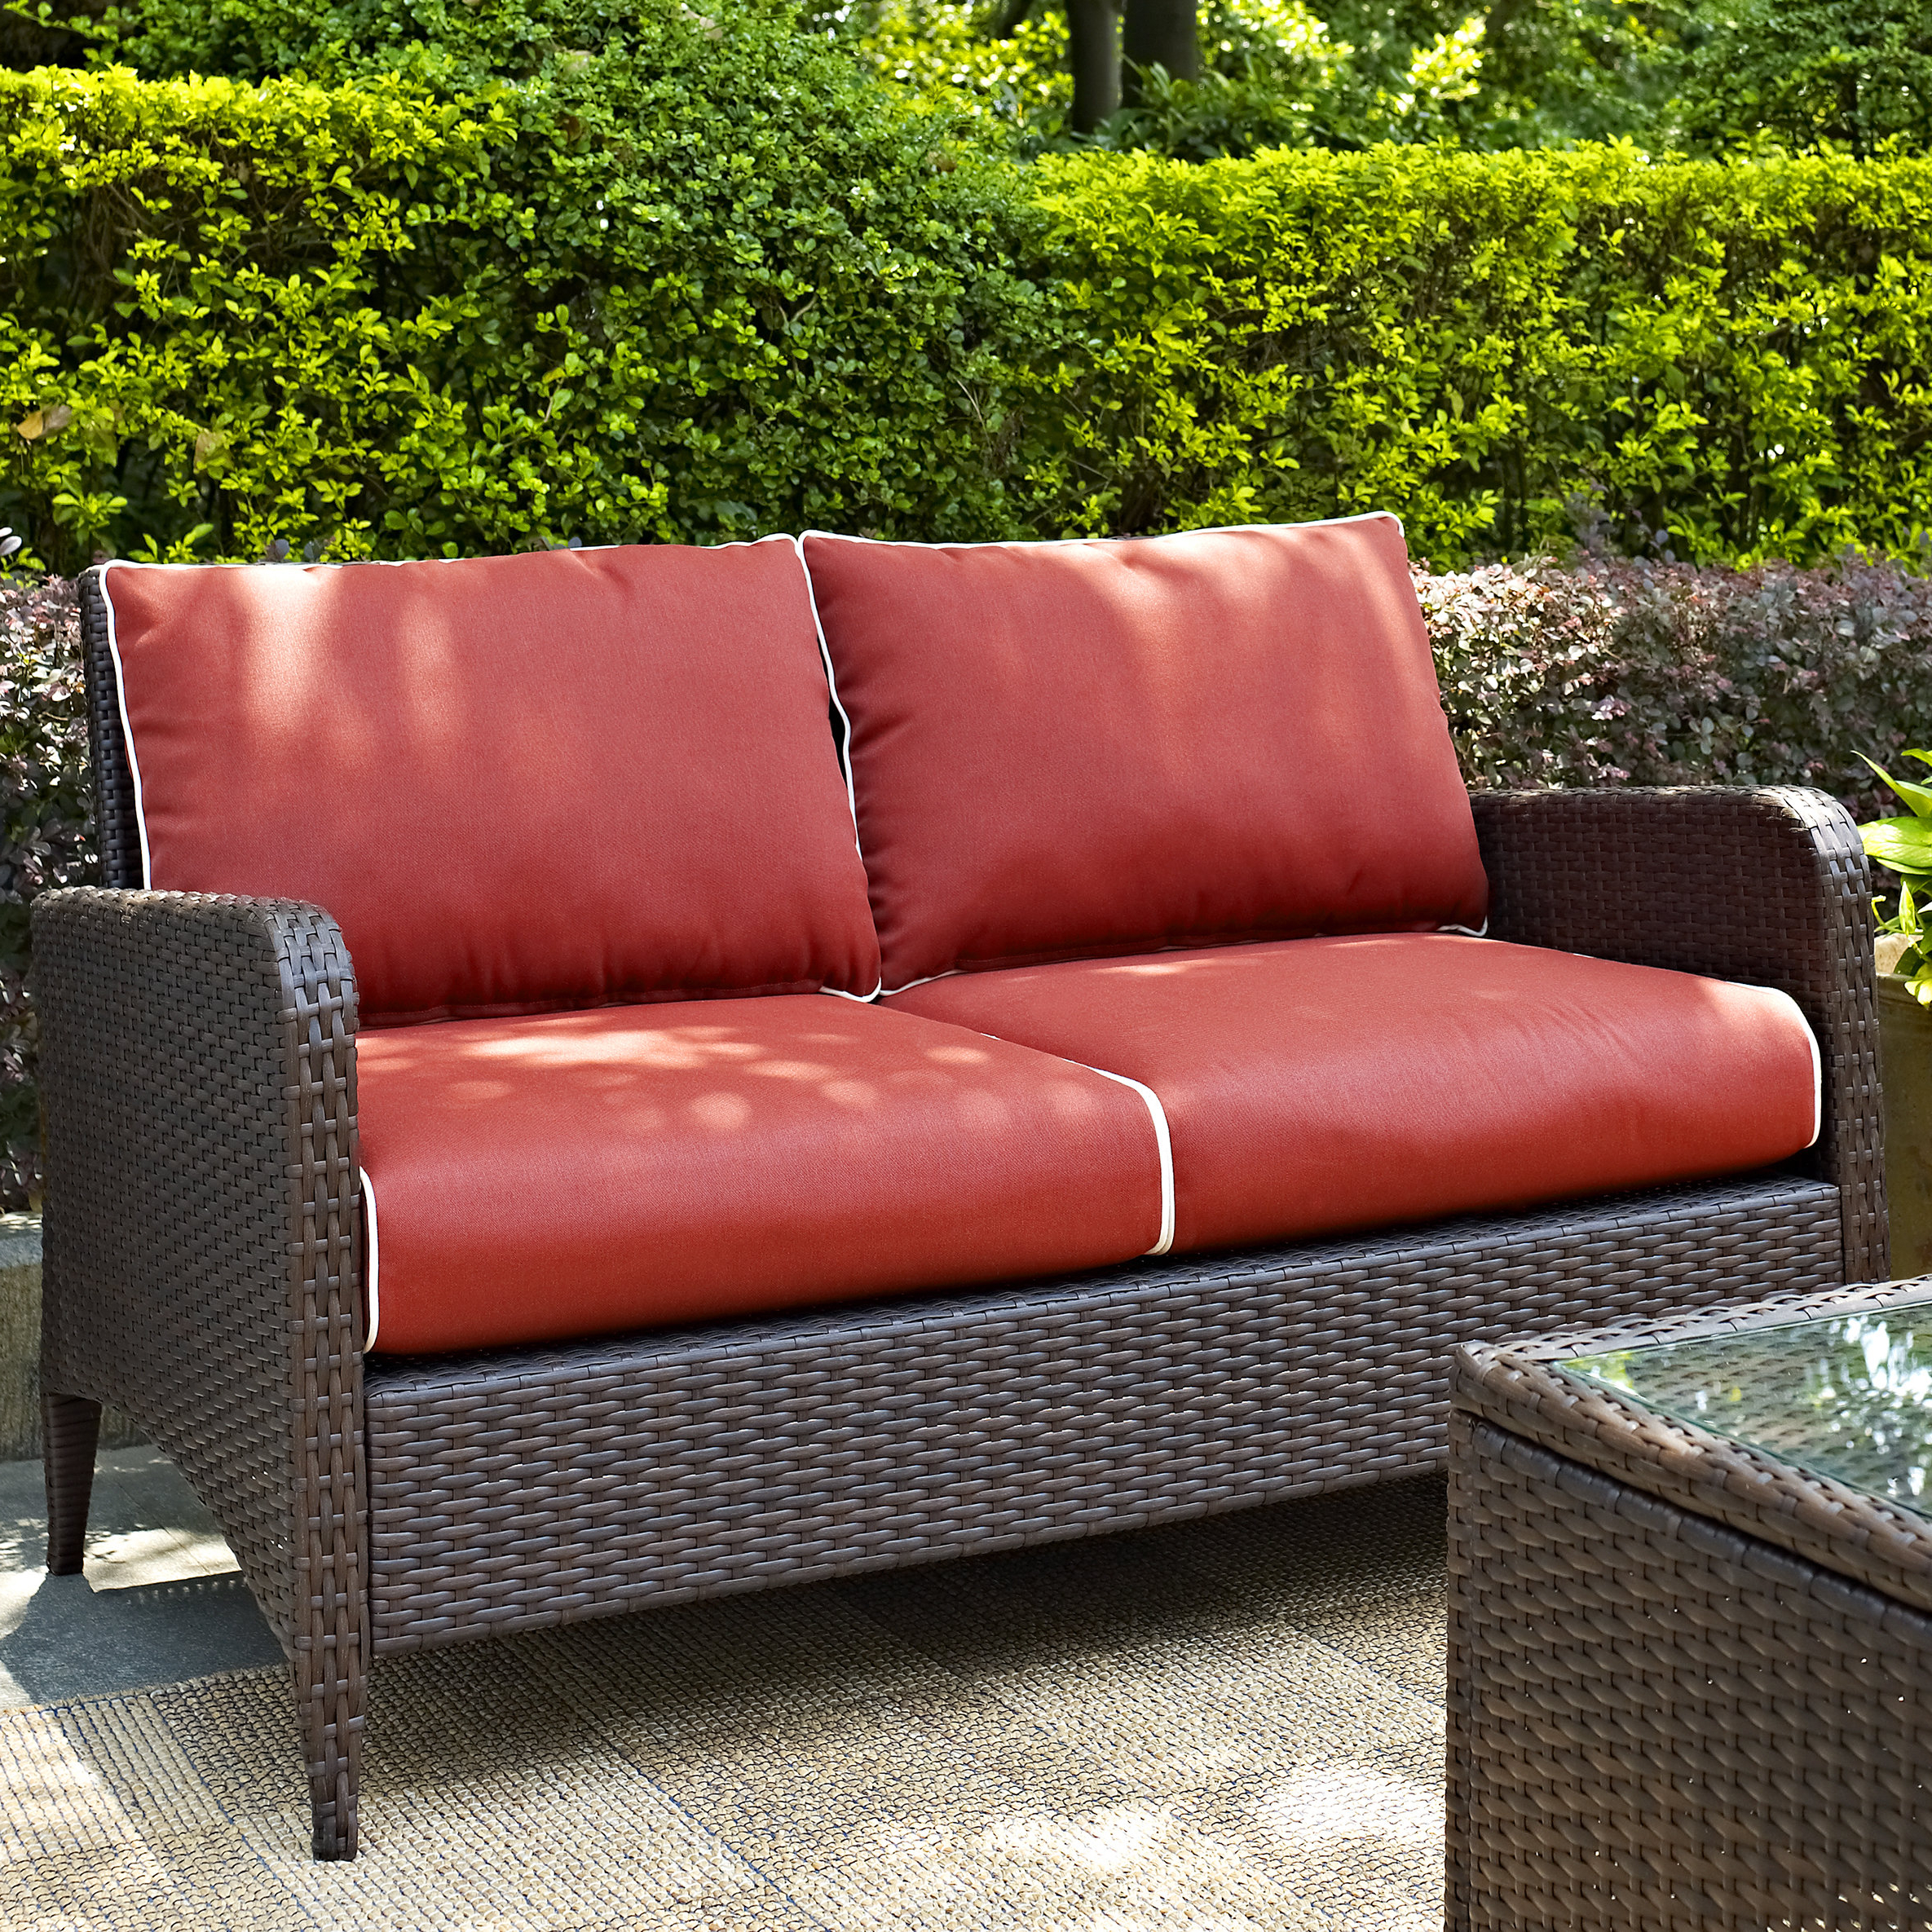 Mosca Patio Loveseat With Cushions Regarding 2019 Mosca Patio Loveseats With Cushions (View 2 of 20)